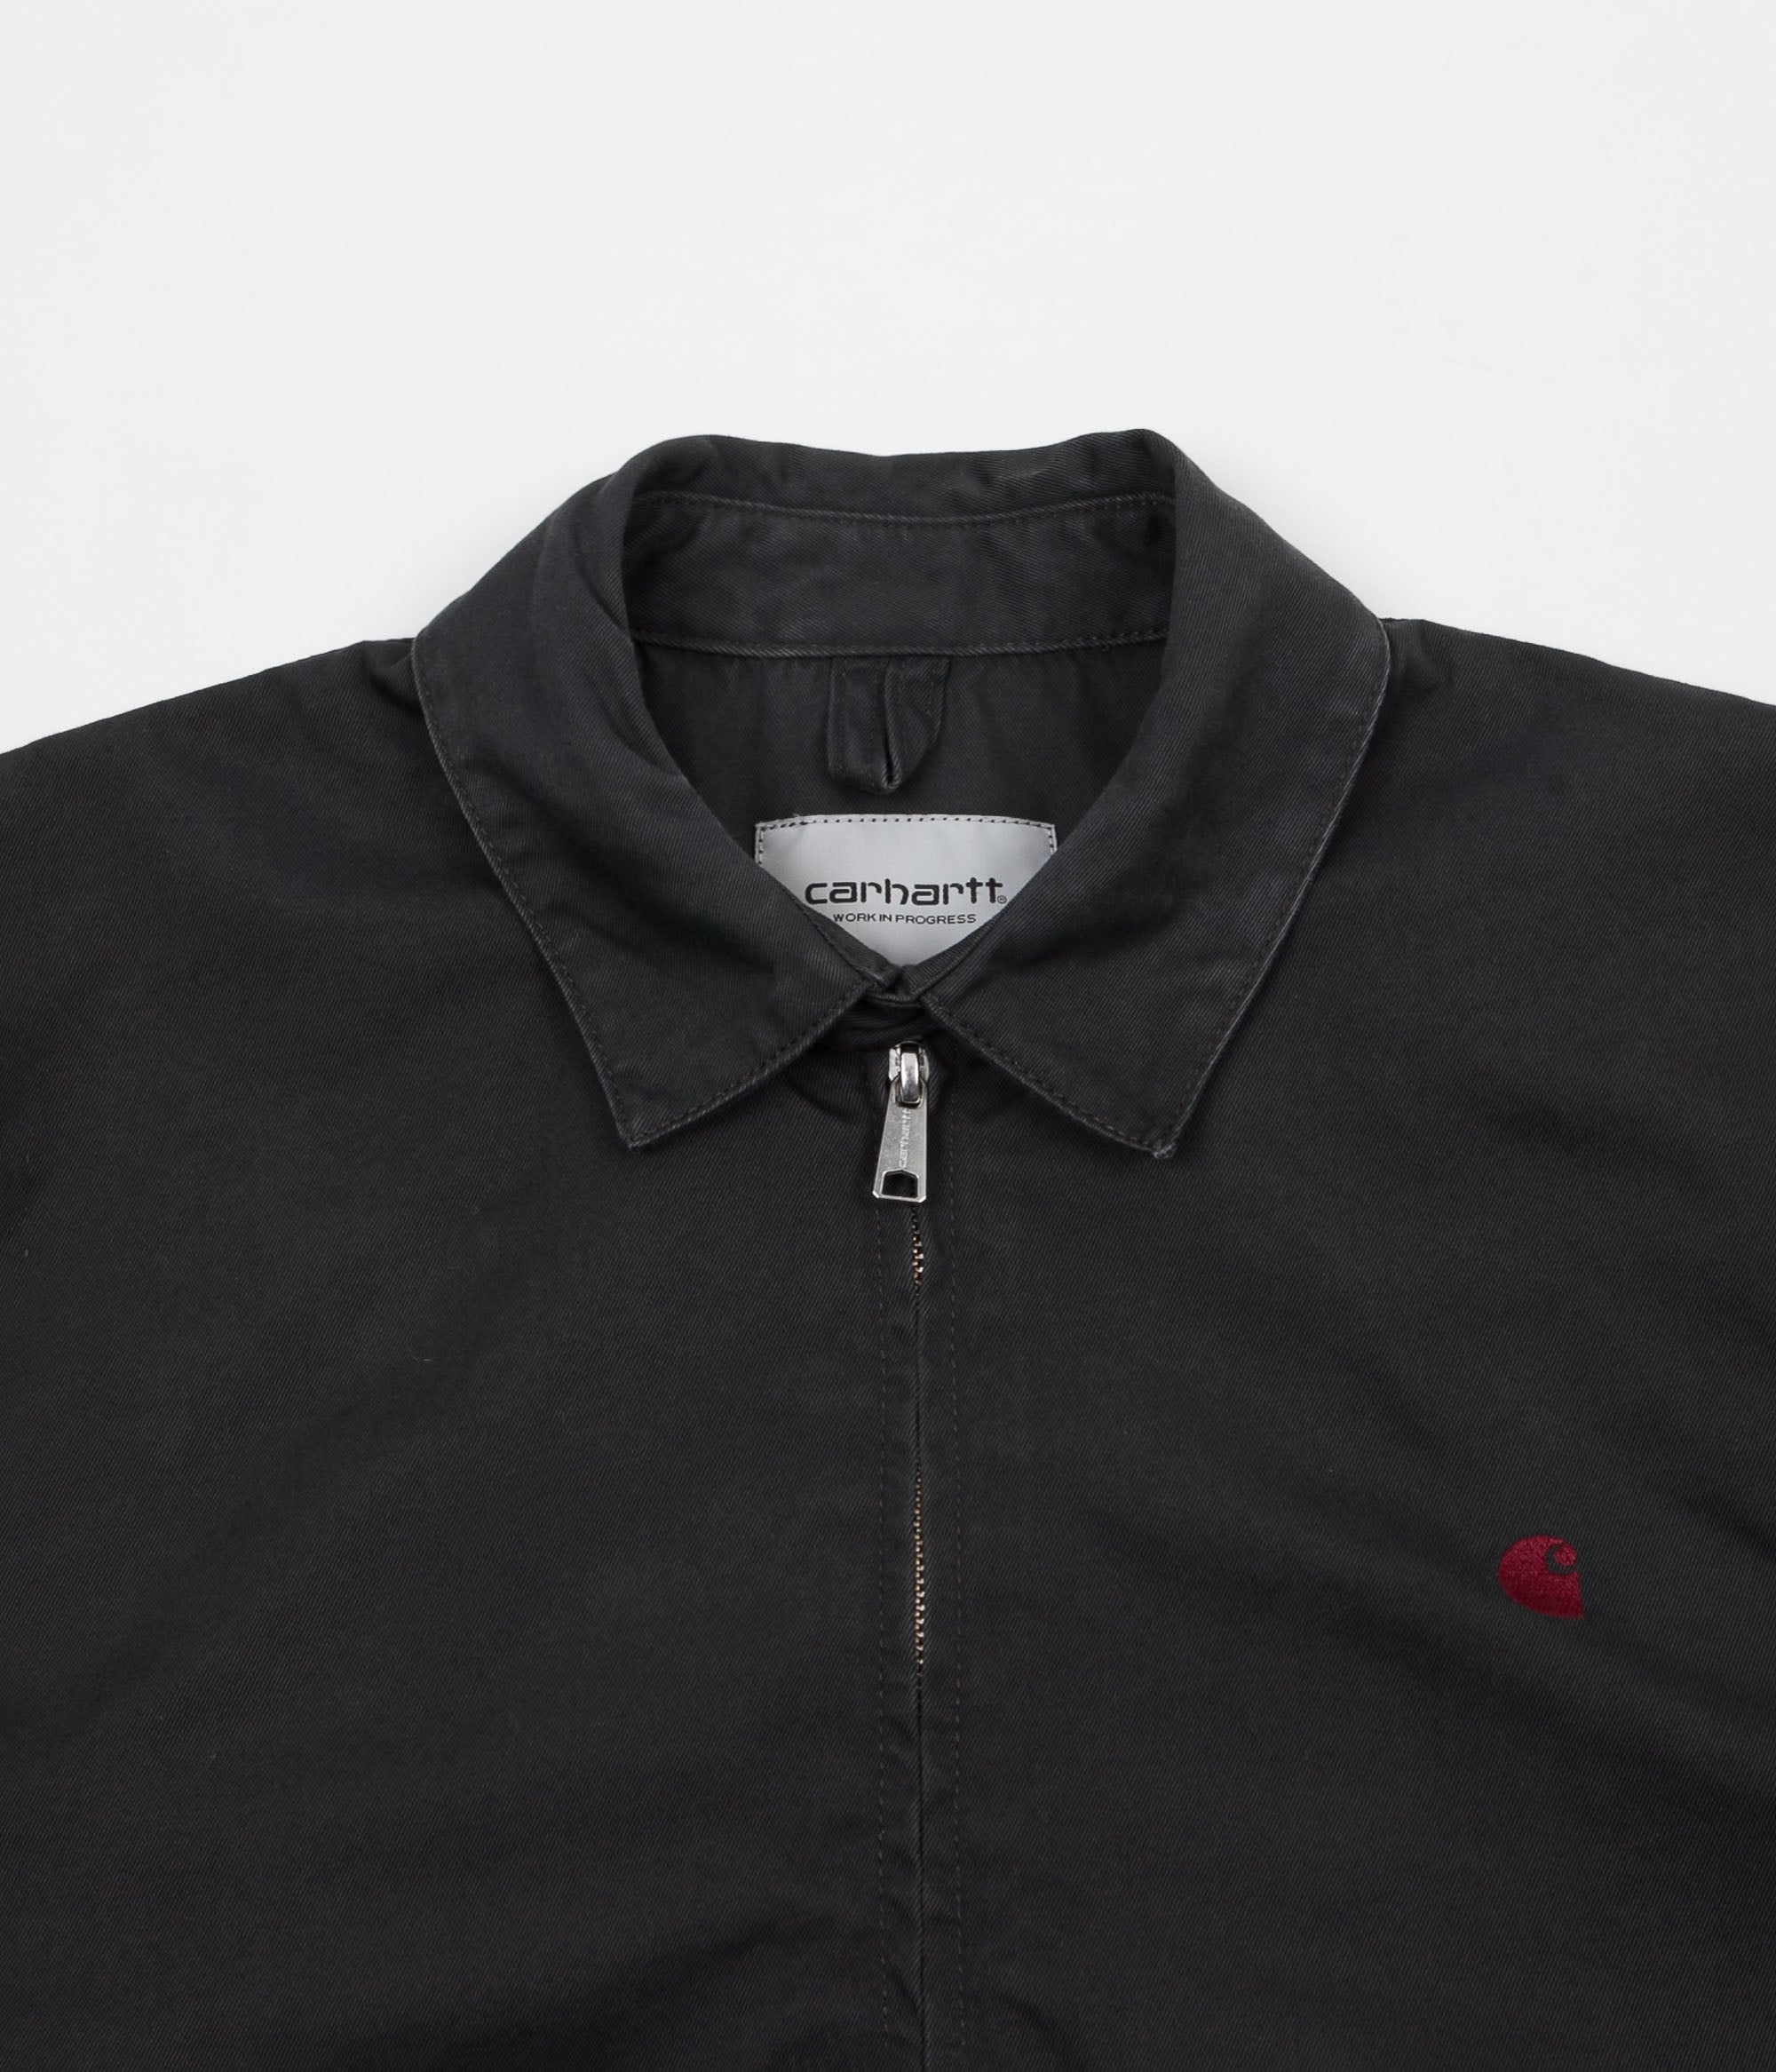 Carhartt Madison Jacket - Asphalt / Chianti